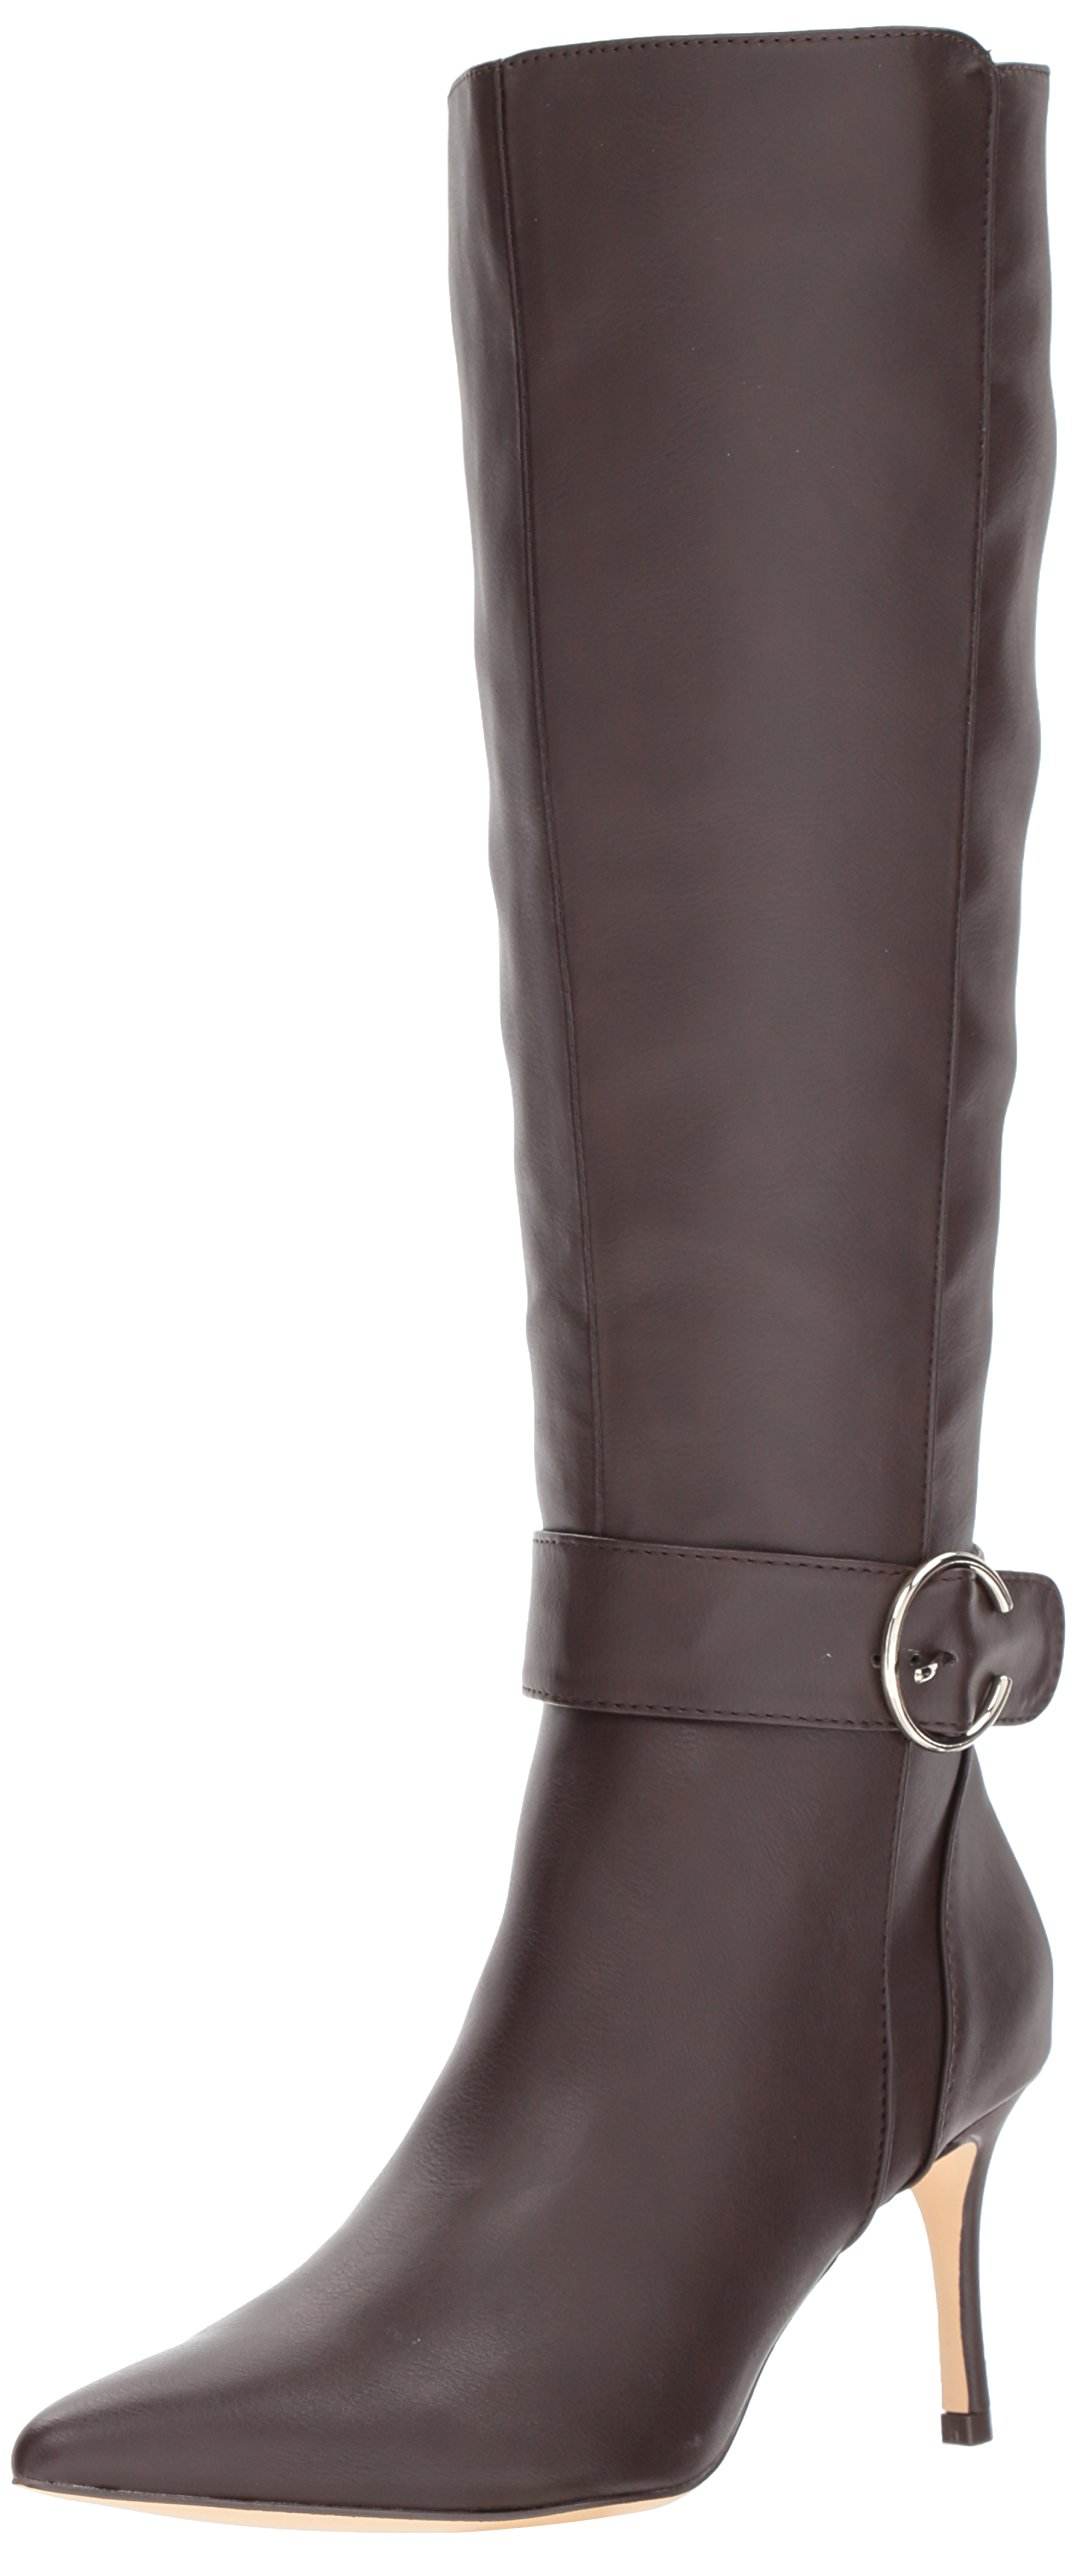 Nine West Women's Moretalkn Synthetic Knee High Boot, Dark Natural Synthetic, 12 Medium US